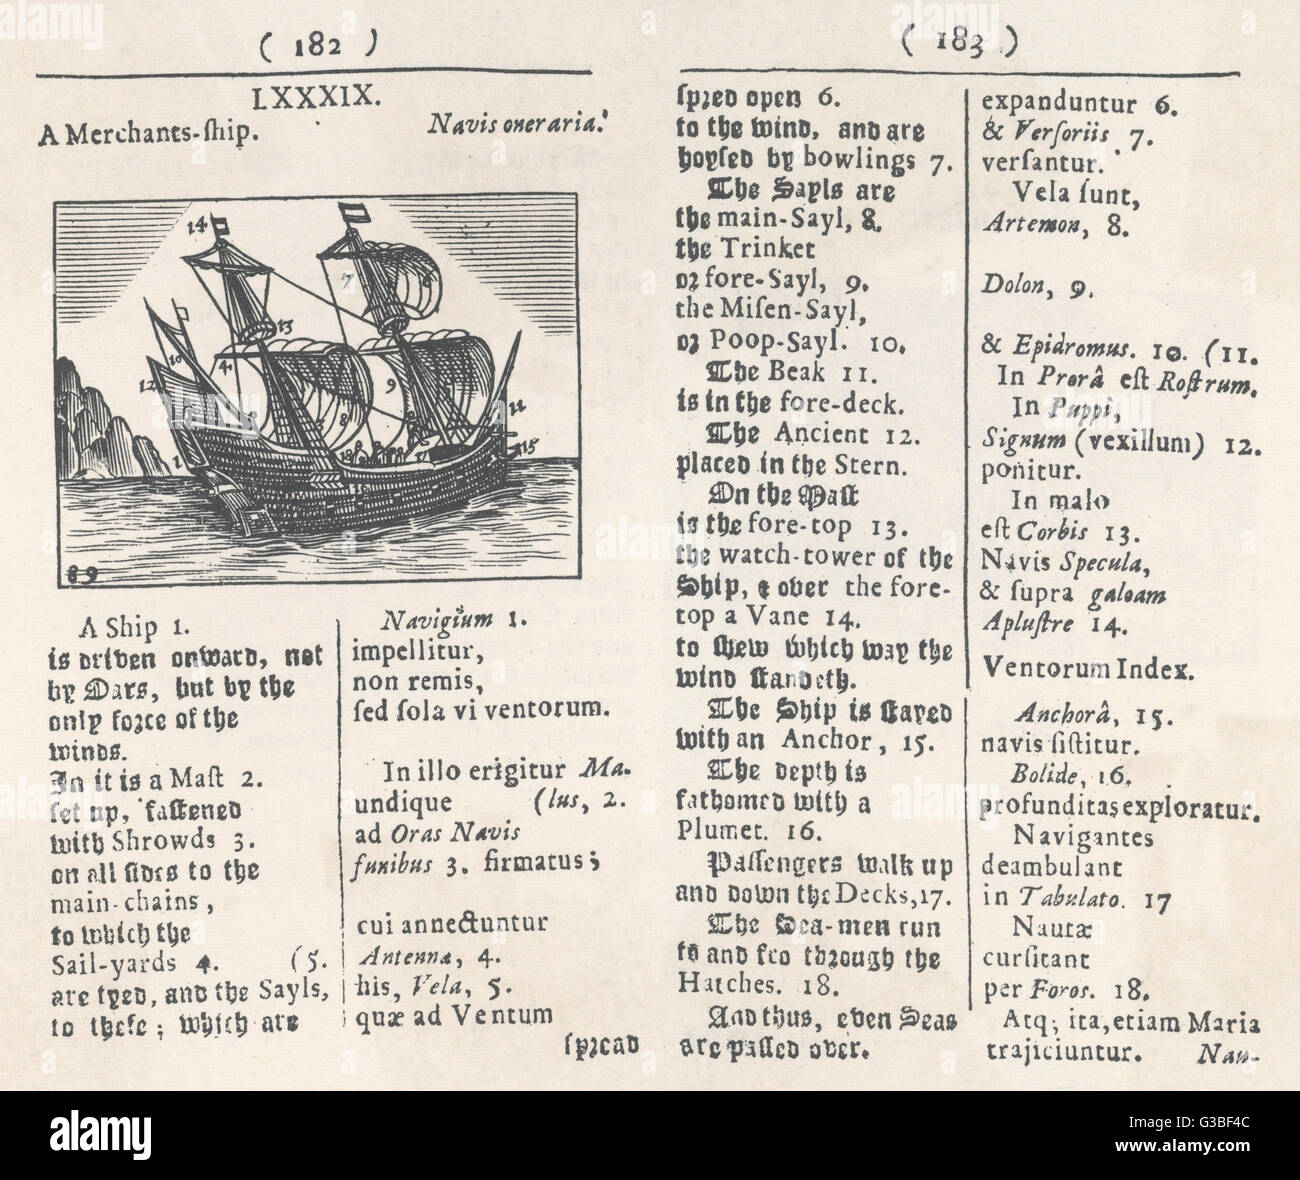 A merchant's ship with a key in English and Latin         Date: 1658 - Stock Image